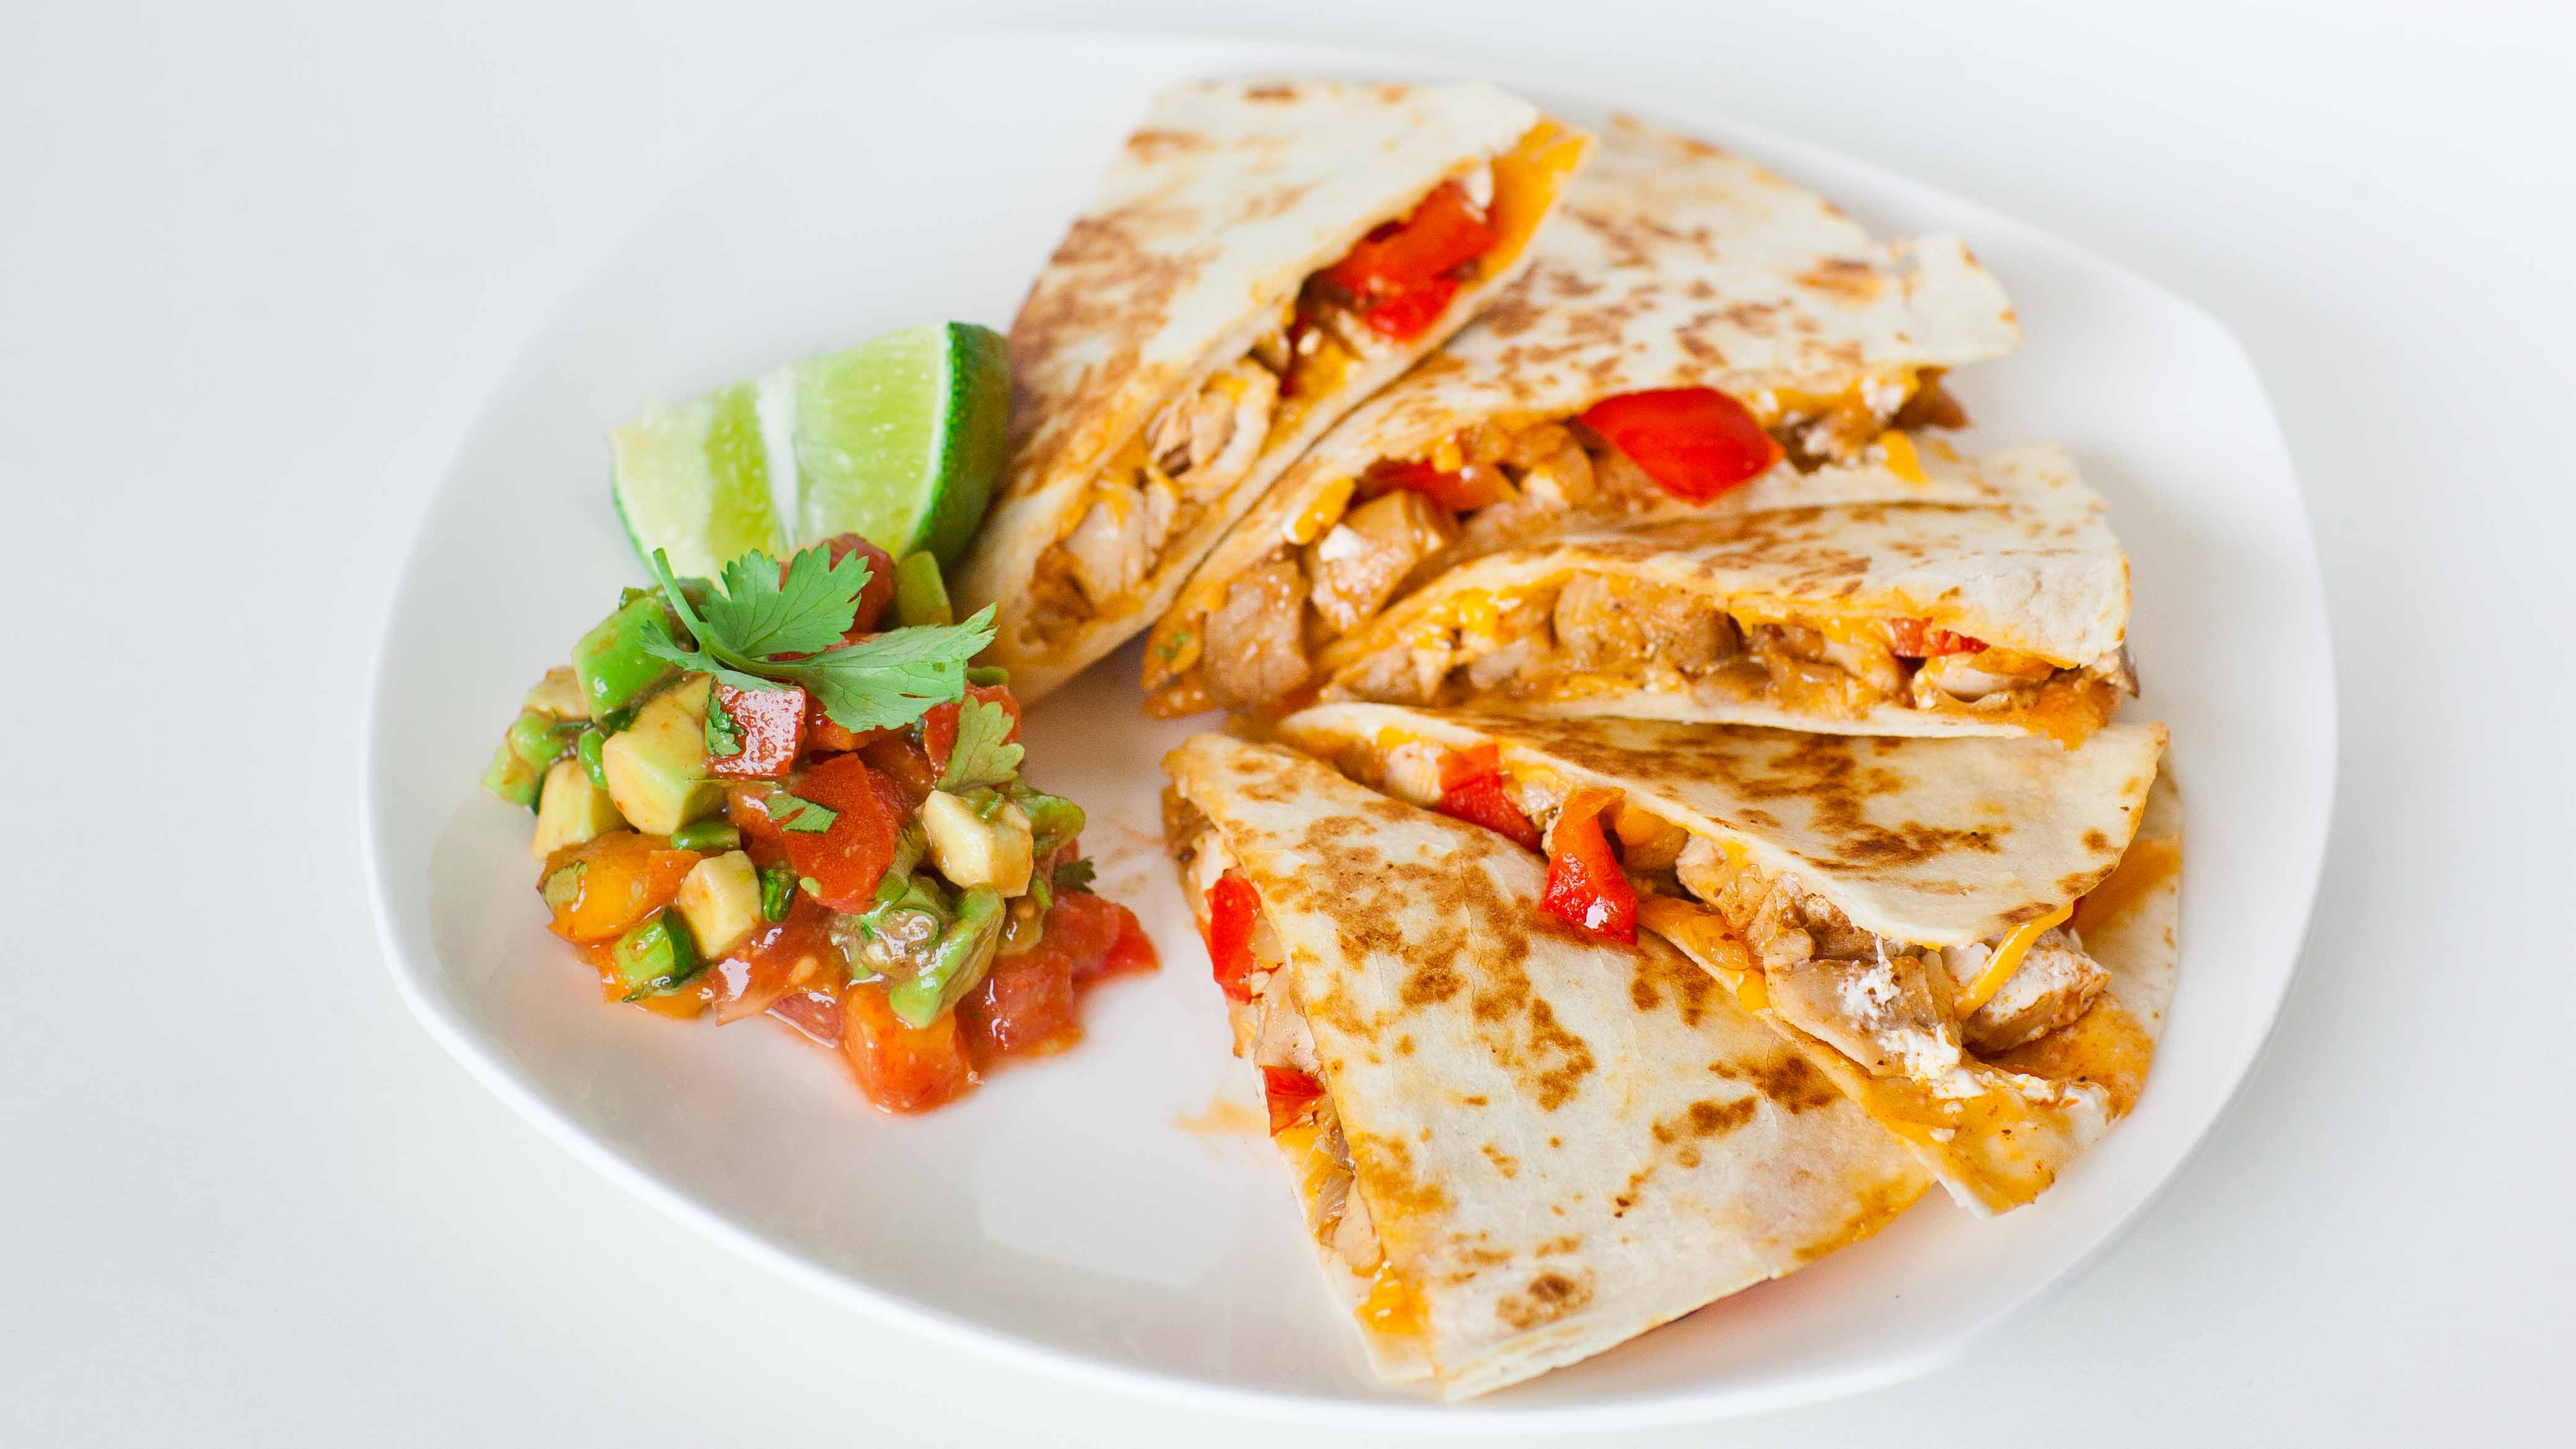 Chicken quesadilla recipe hispanic food network chicken quesadilla recipe forumfinder Gallery